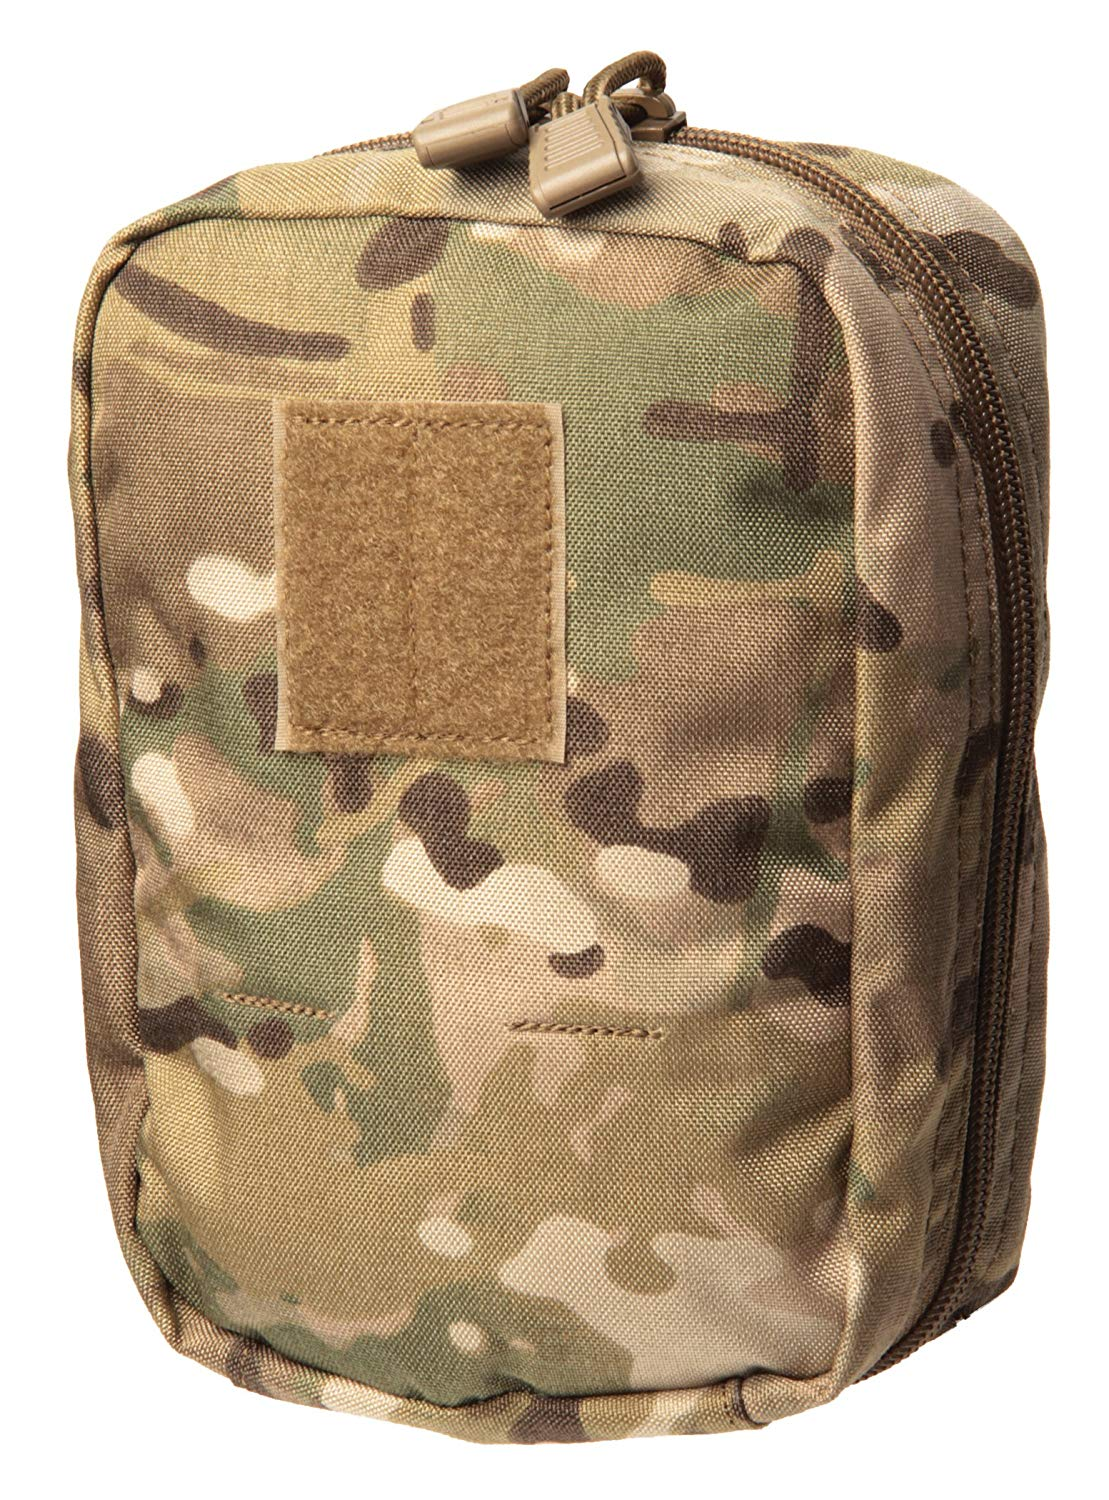 Blackhawk STRIKE First Aid Pouch